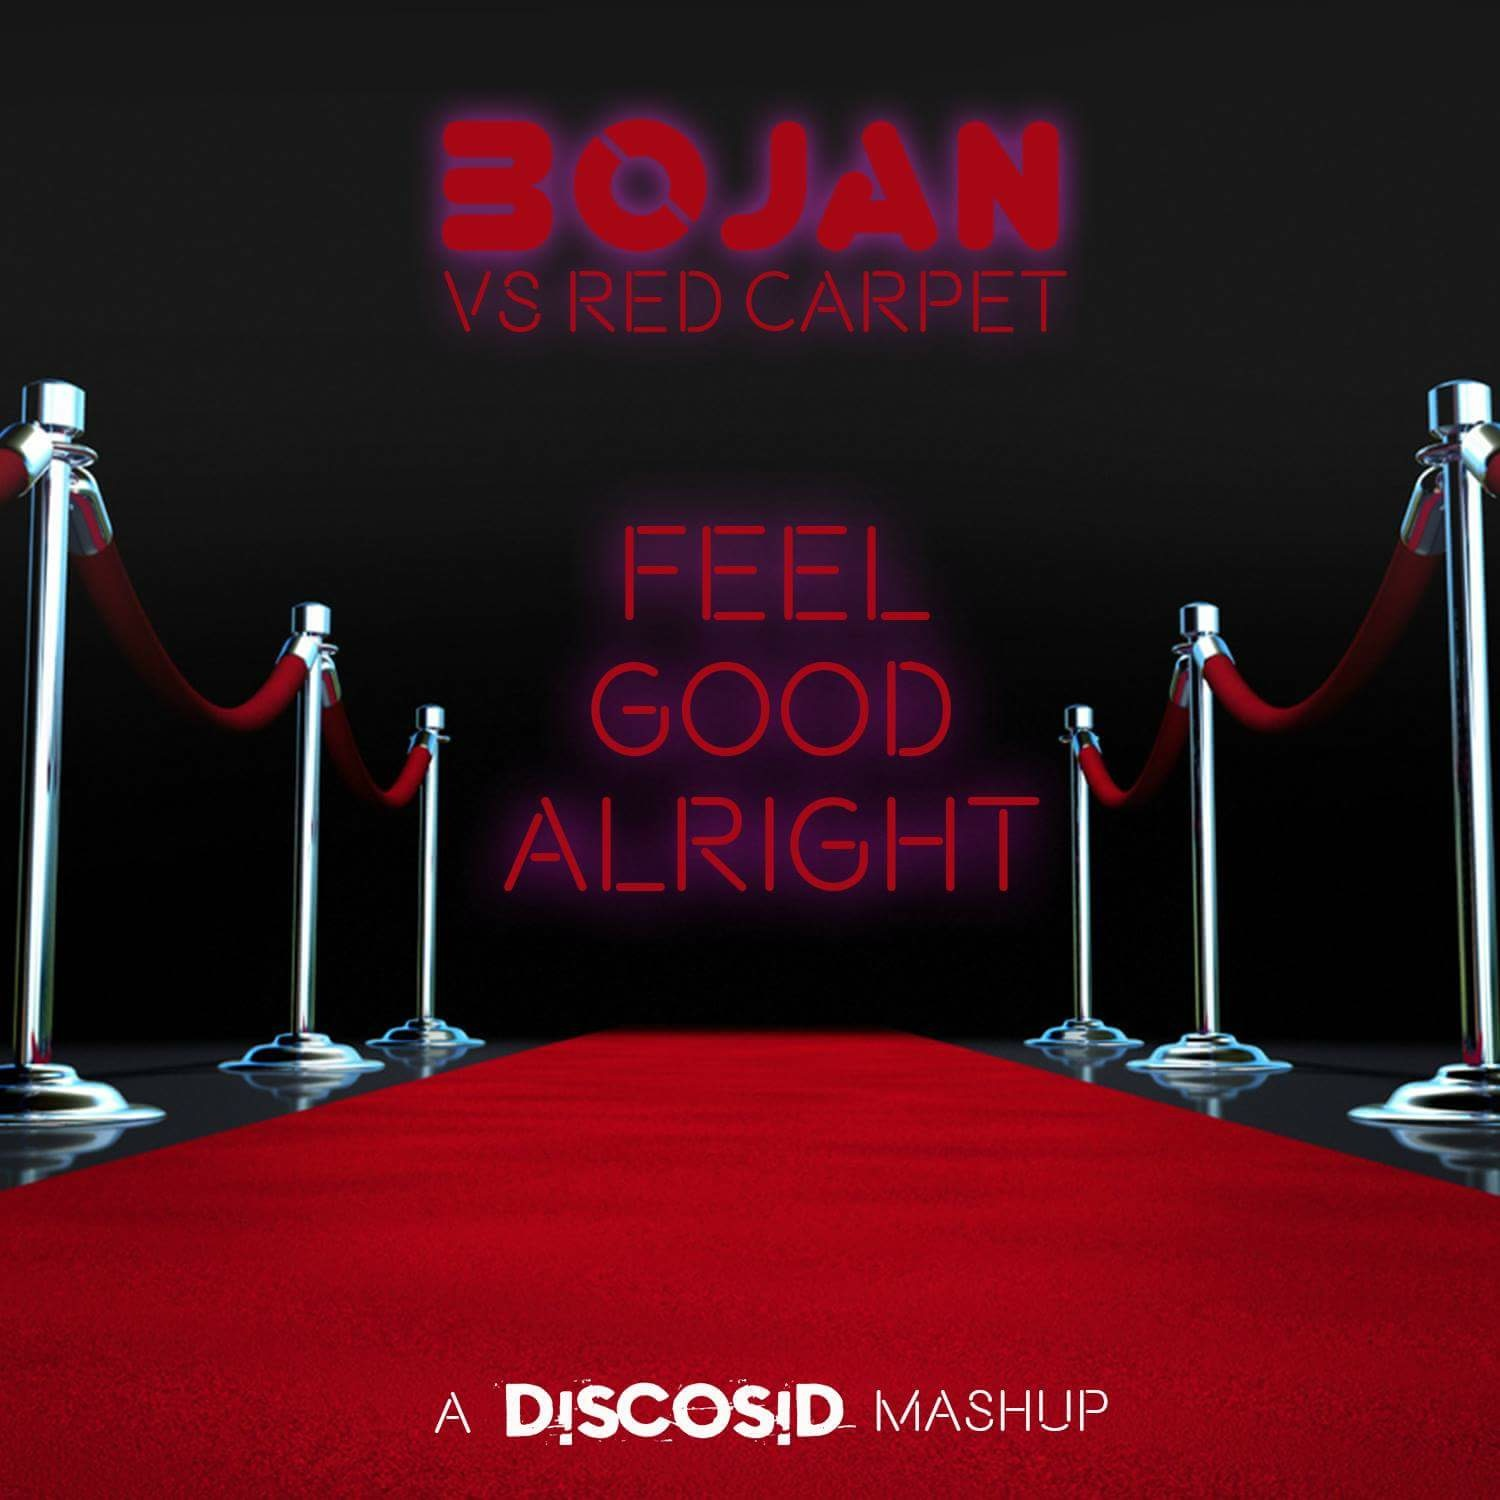 Bojan Vs Red Carpet - Feel Good Alright (Discosid Mashup)